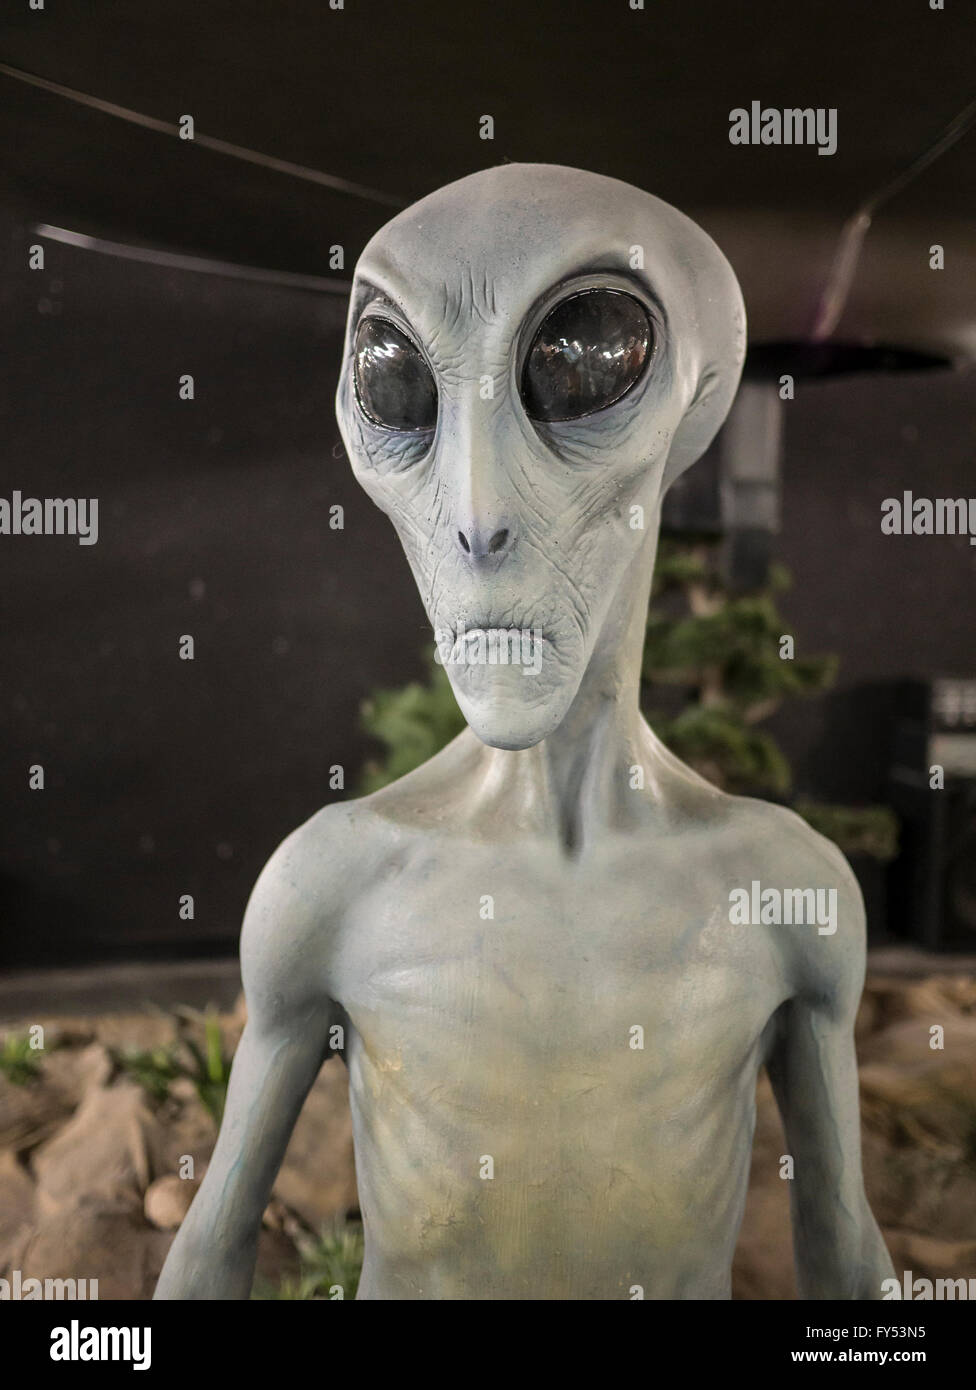 Alien mannequin, UFO Museum, Roswell, New Mexico. - Stock Image